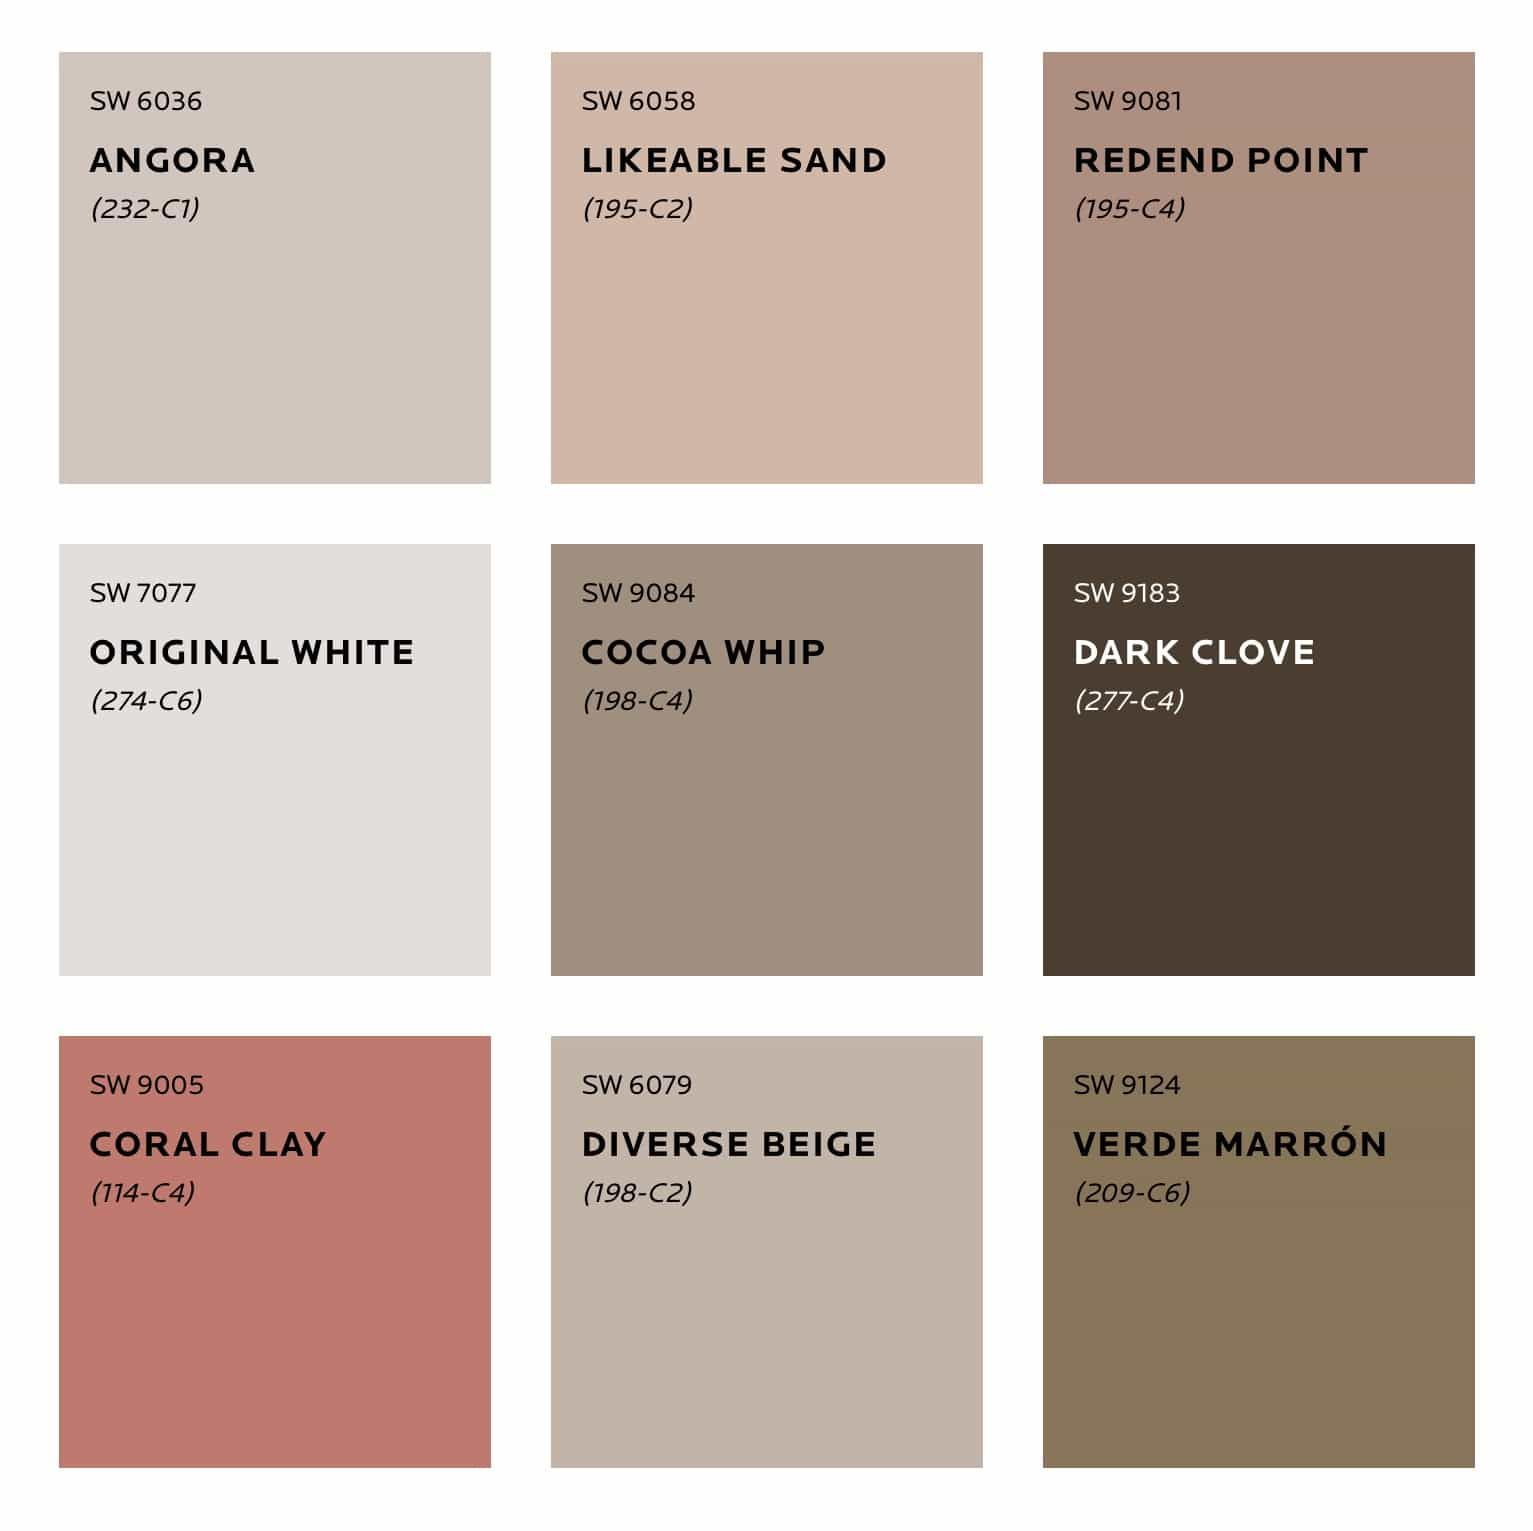 Colour Trends For 2020 Sherwin Williams Forecast Flamingo Cocktail Colores De Pintura Para Casa Colores De Fachadas Paletas De Colores Neutros